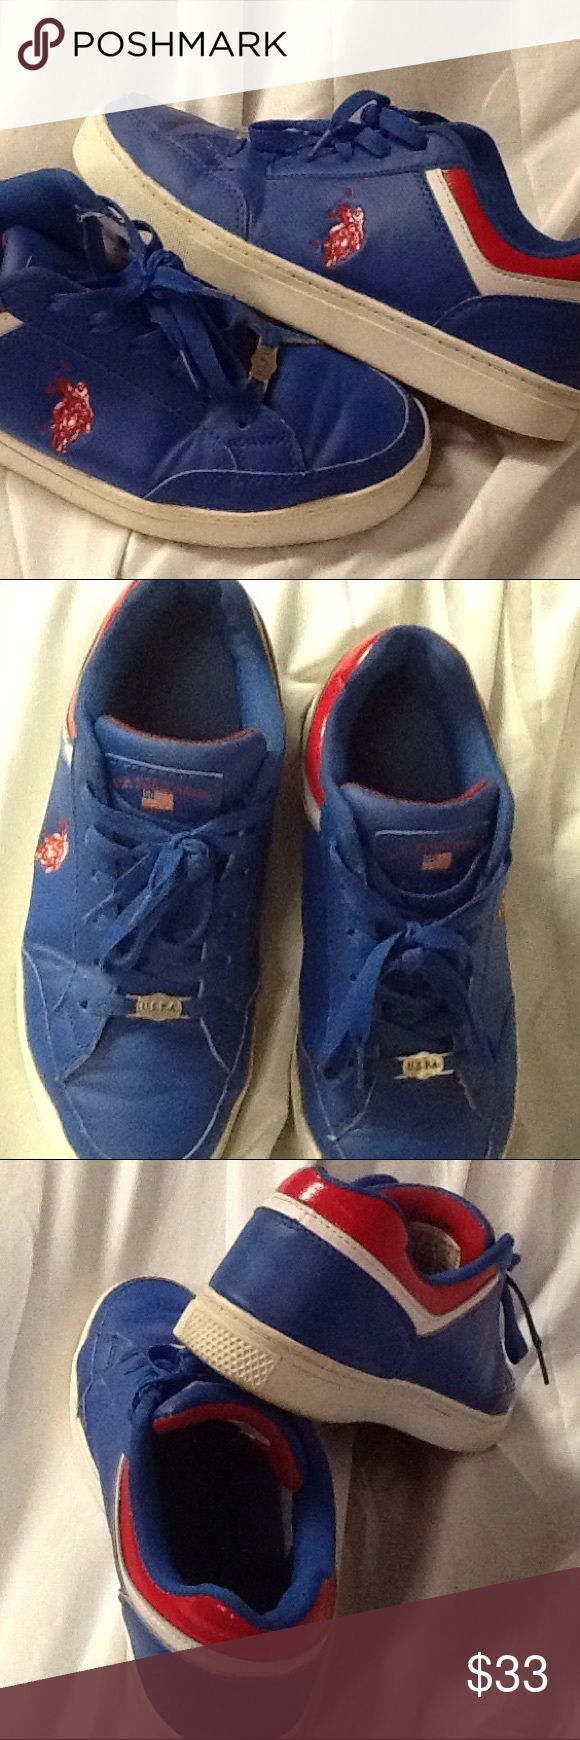 Shoes Polo brand shoes good condition us polo association Shoes Sneakers